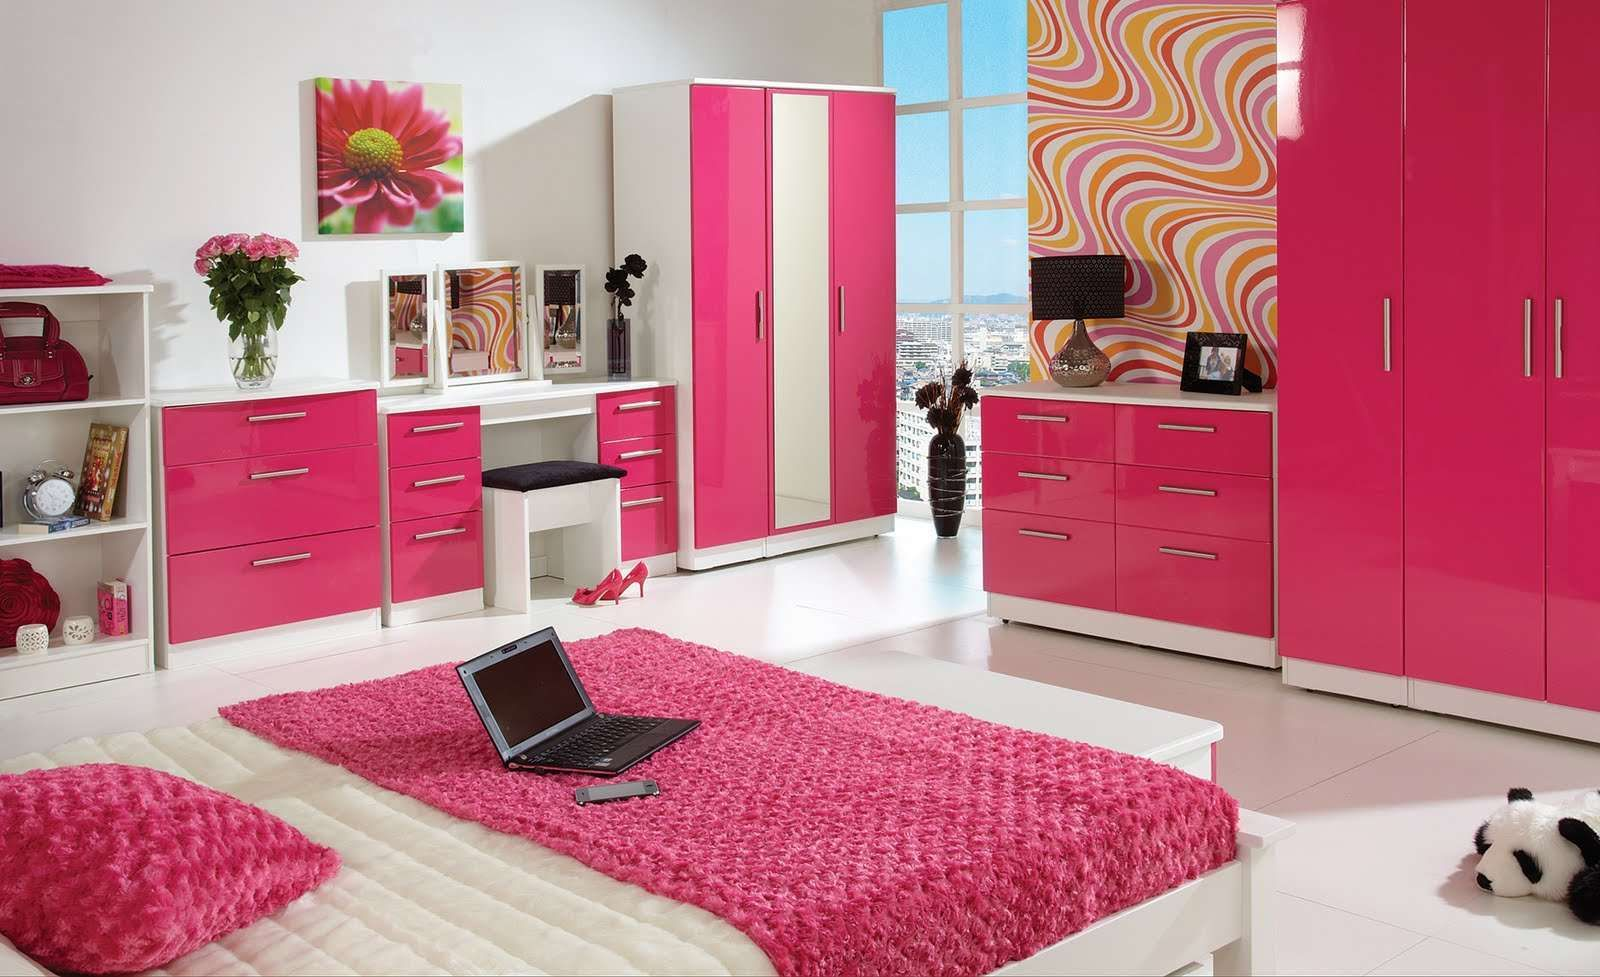 bedroom furniture sets teenage girls download best latest bedroom furniture sets teenage girls - Bedroom Sets Teenage Girls